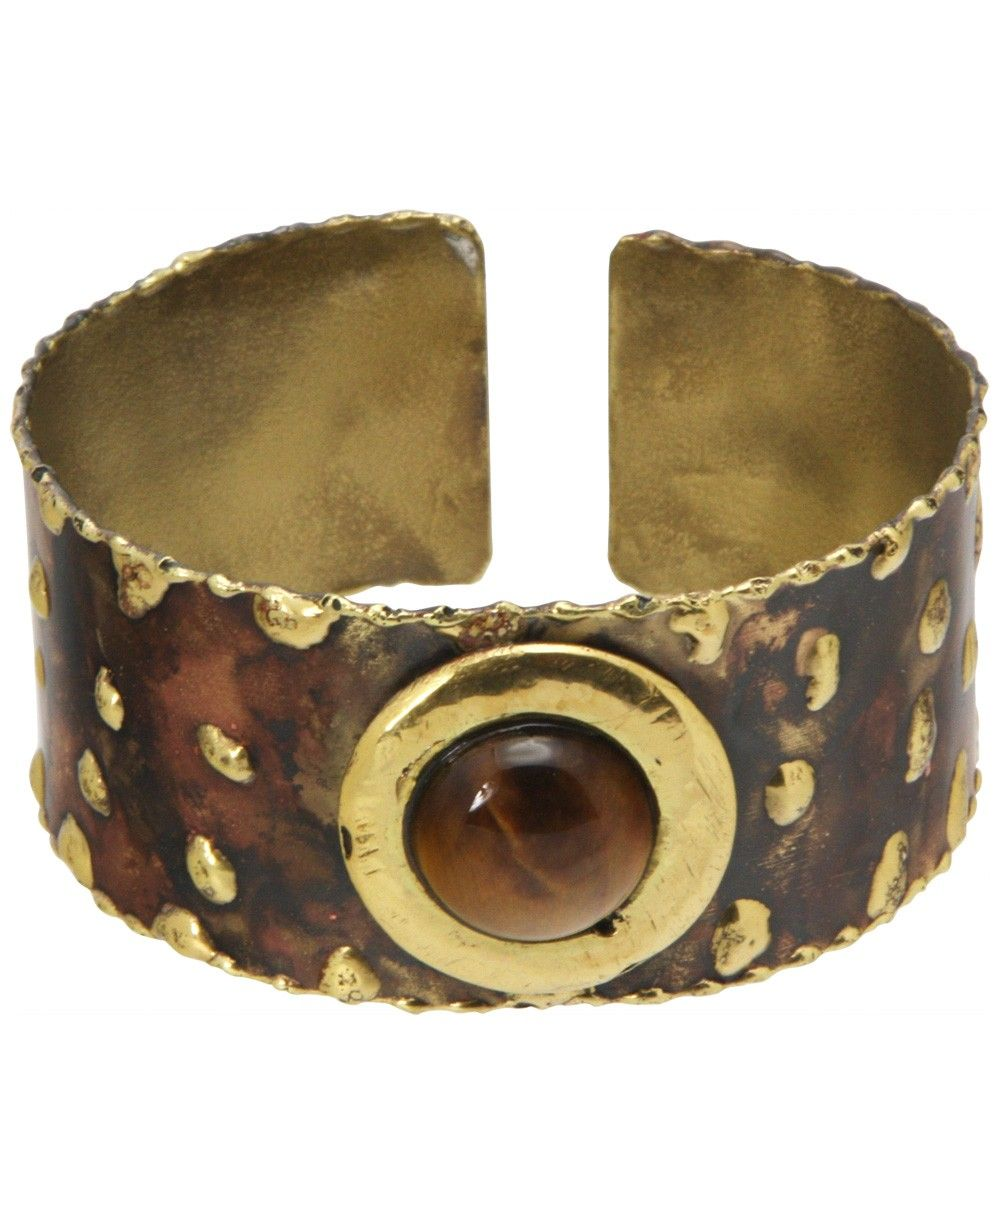 Tiger S Eye Jewelry And Its Meaning Wasabifashioncult Com Zyla